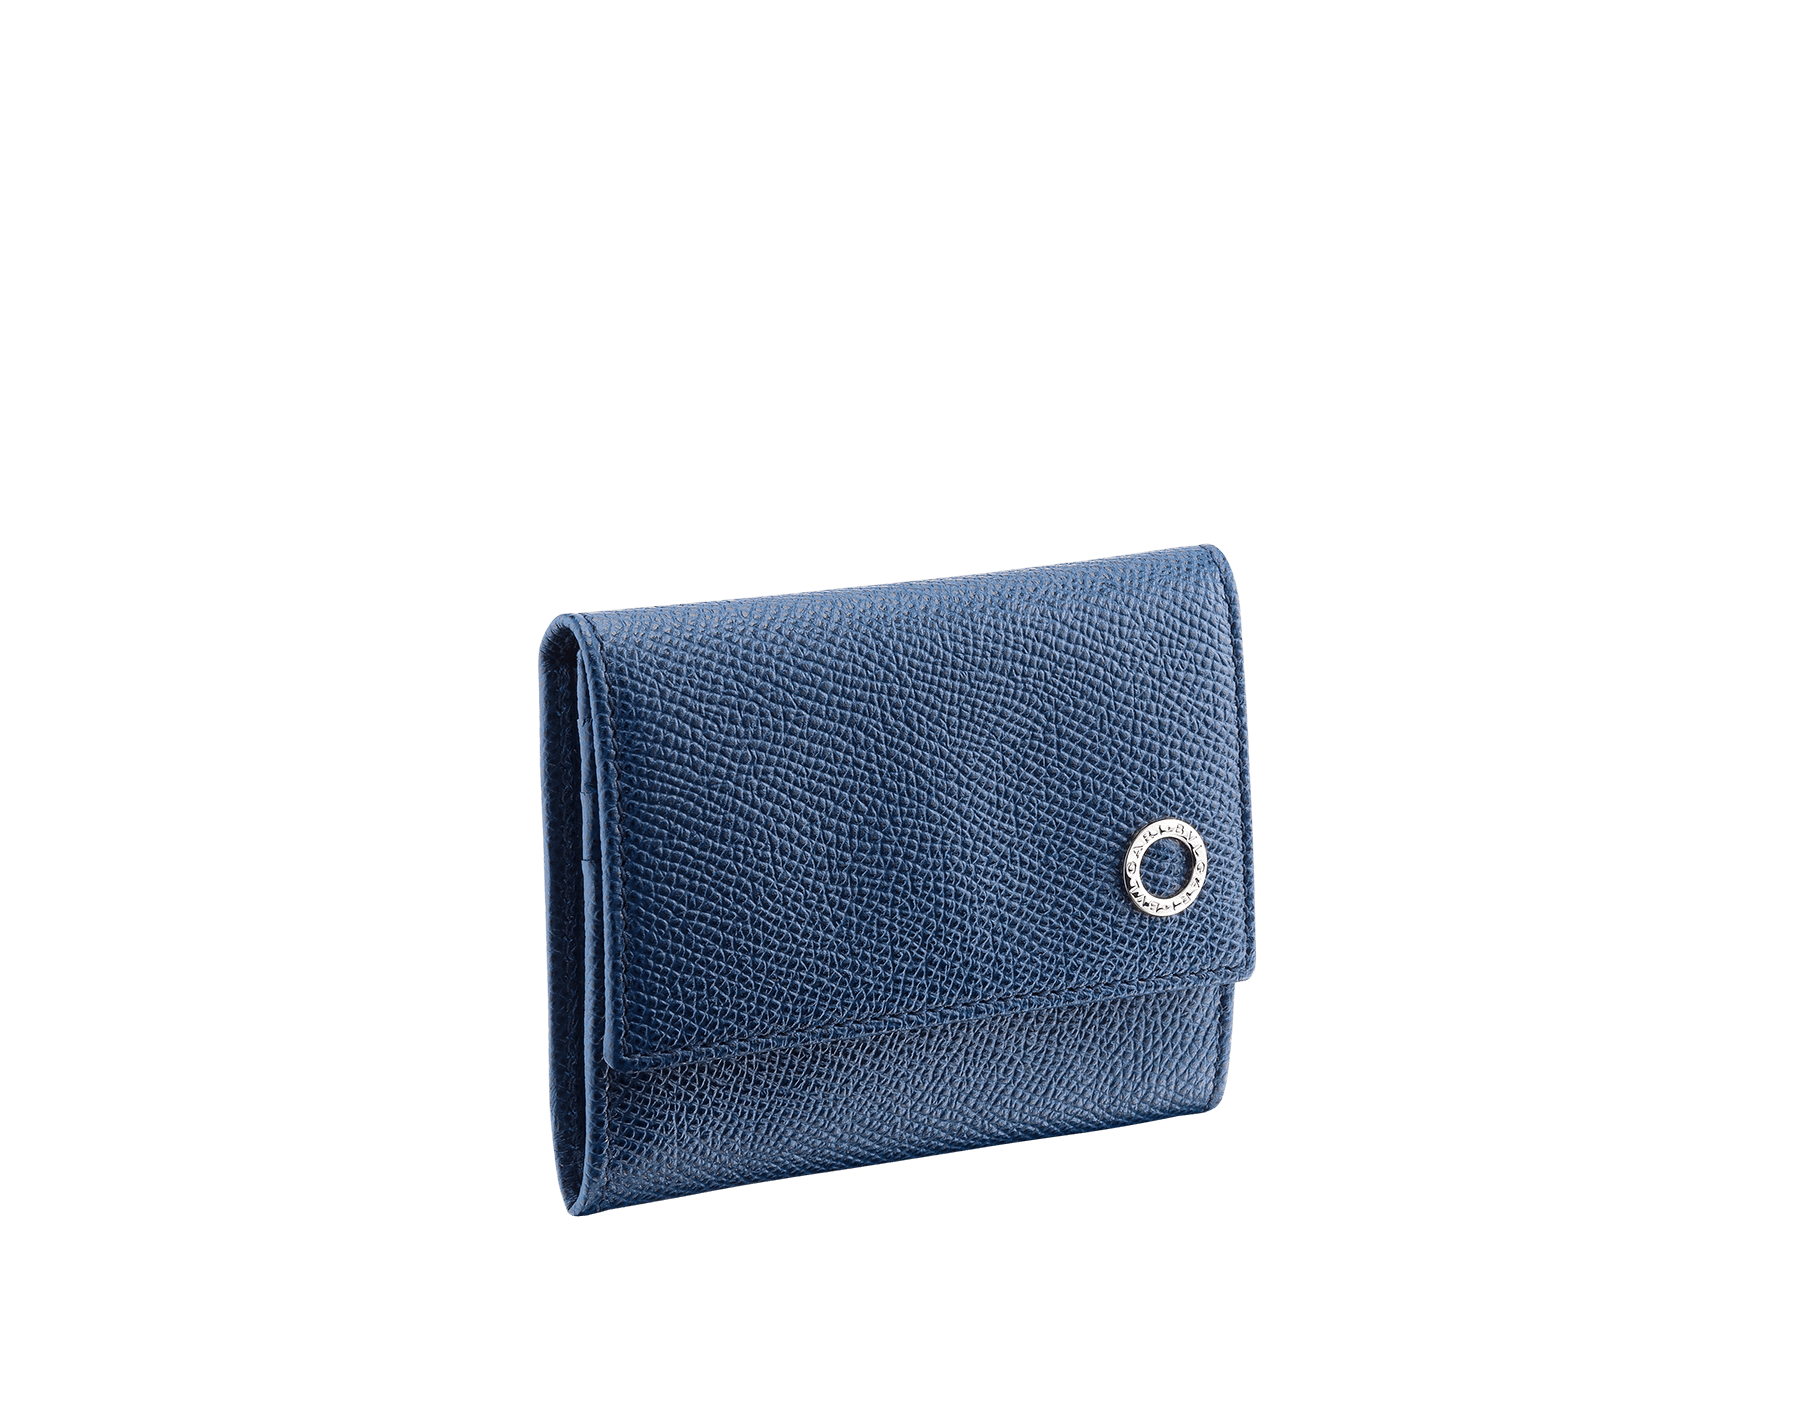 Coin and credit card holder in denim sapphire grain calf leather with brass palladium plated BVLGARI BVLGARI motif. 282609 image 1